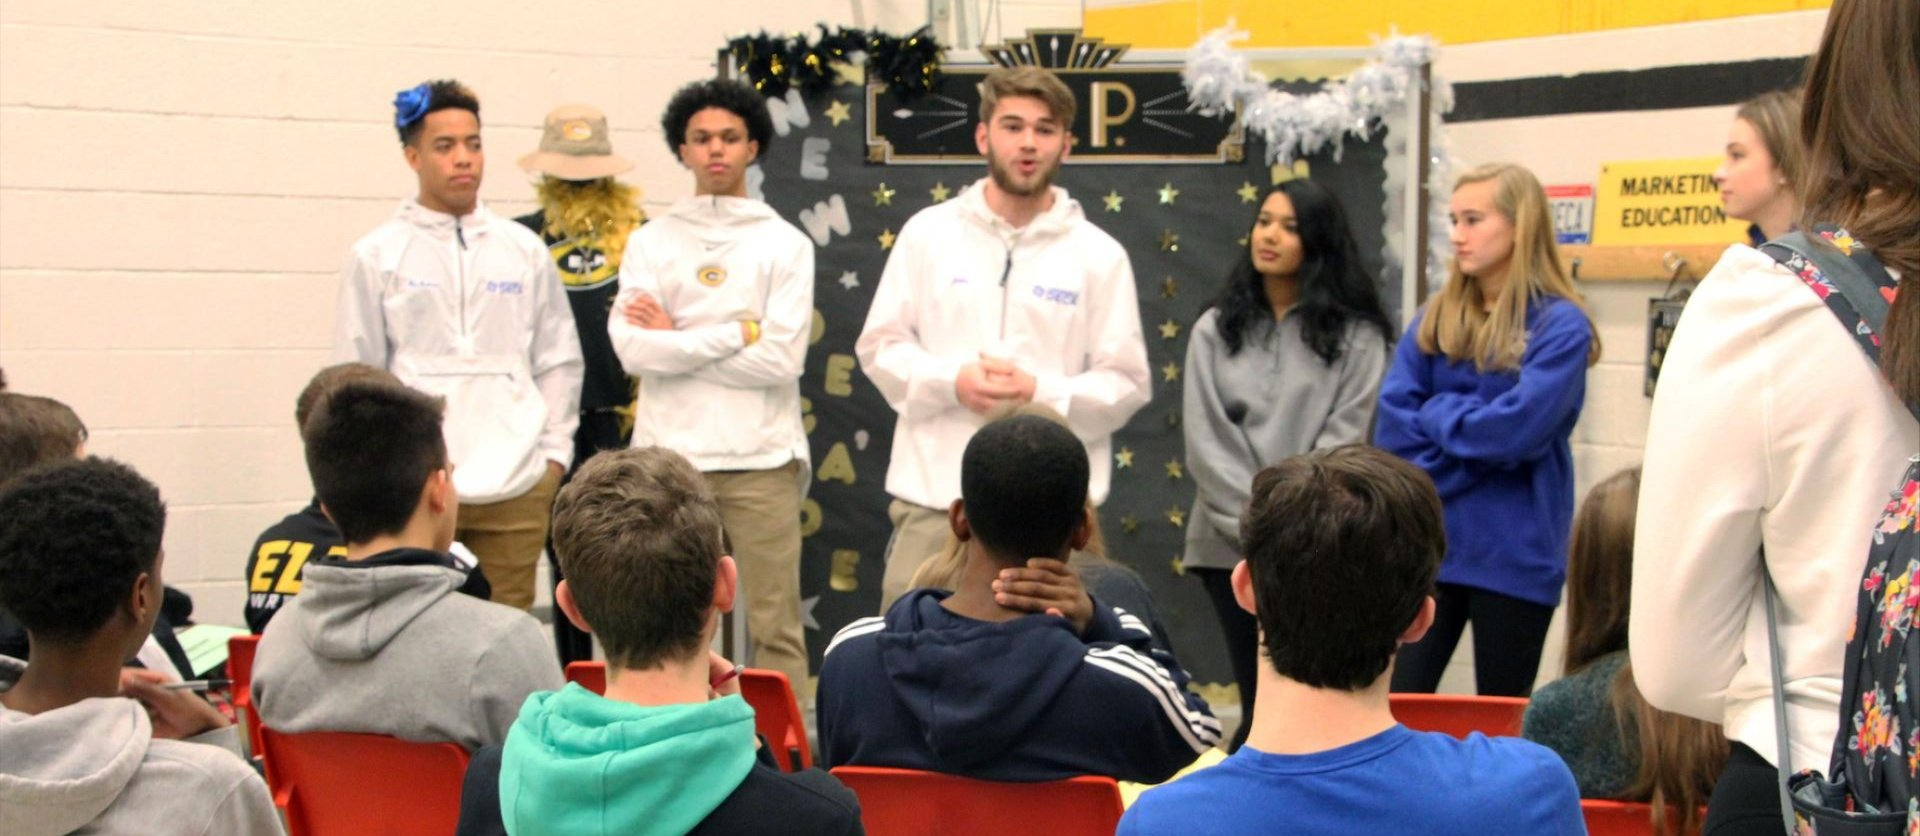 Image of CHS students during 2020 Career Tech Education Expo